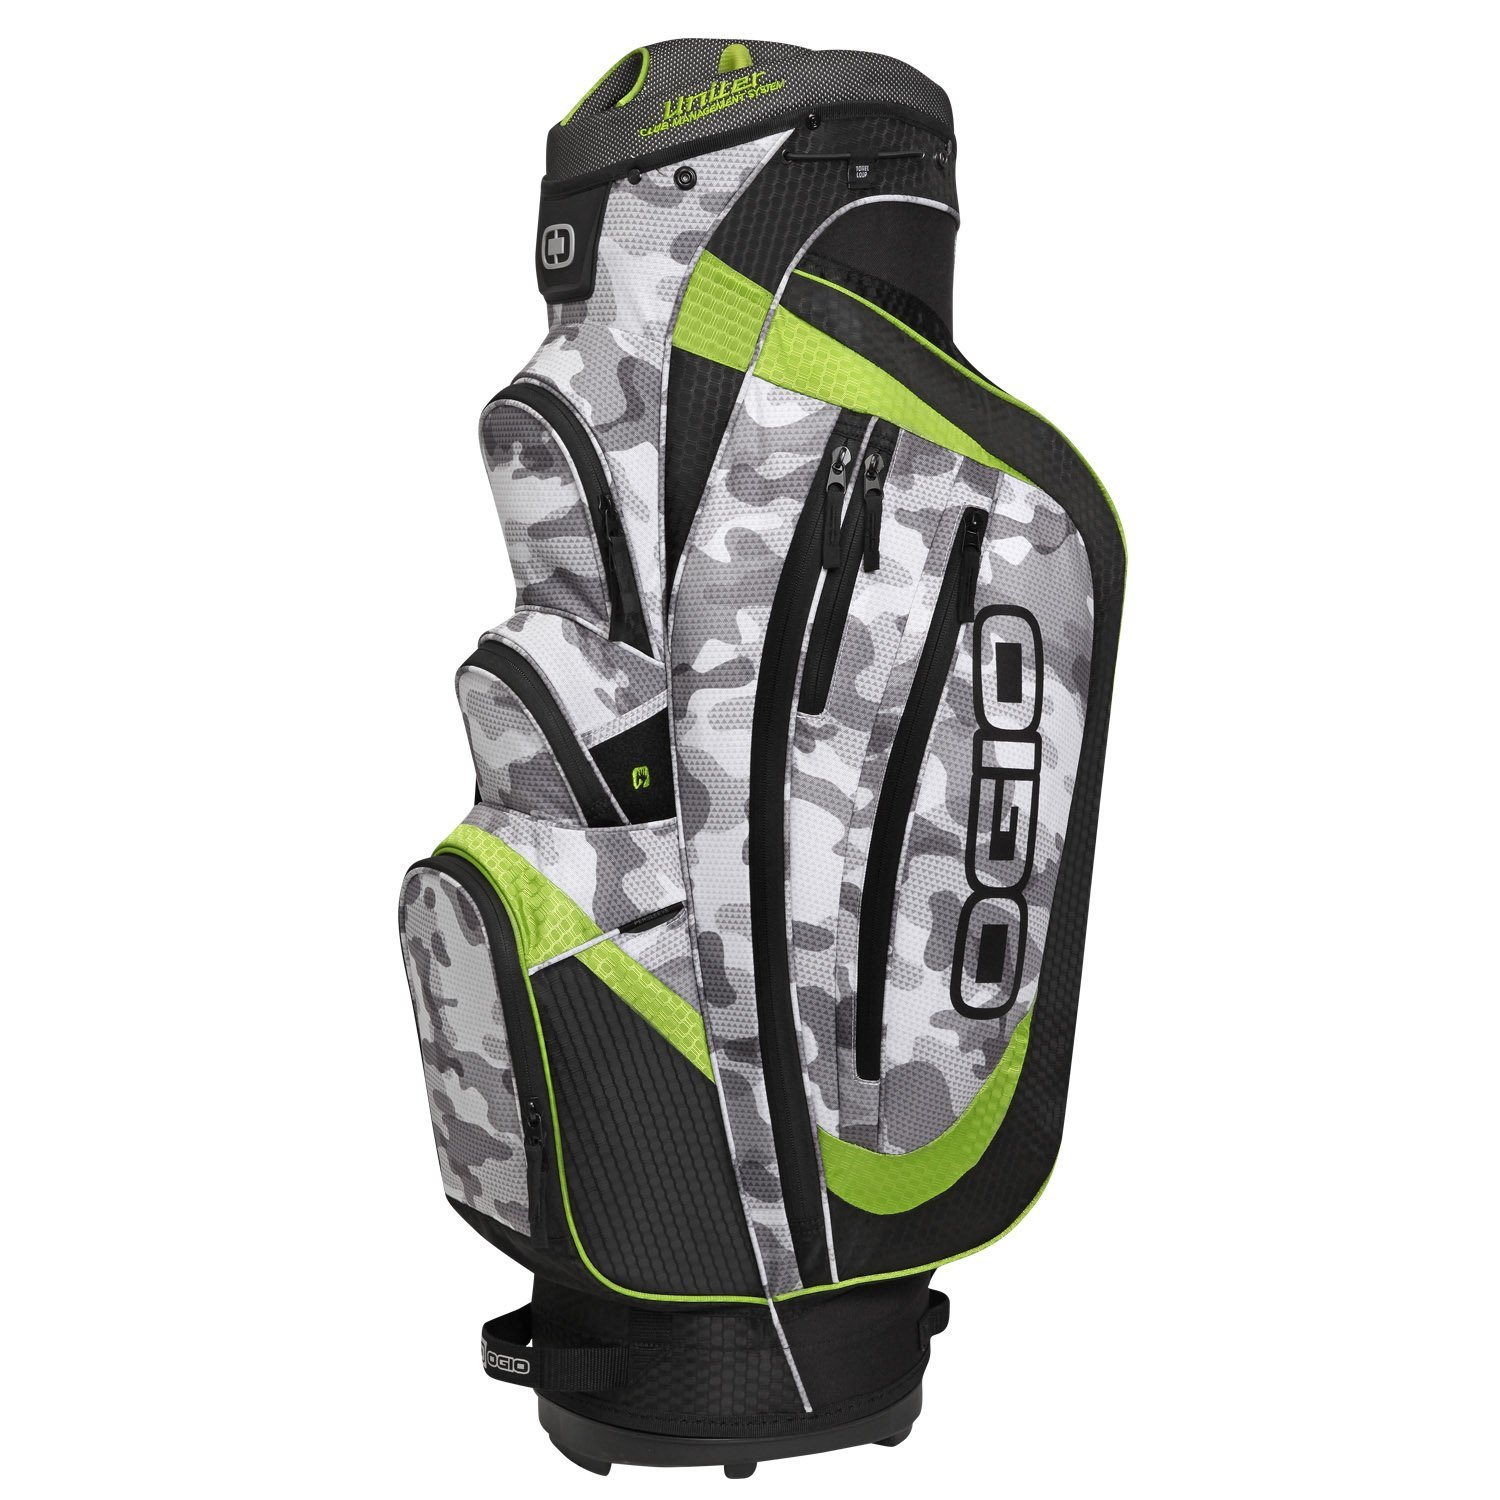 Mens Ogio 2015 Shredder Golf Cart Bags